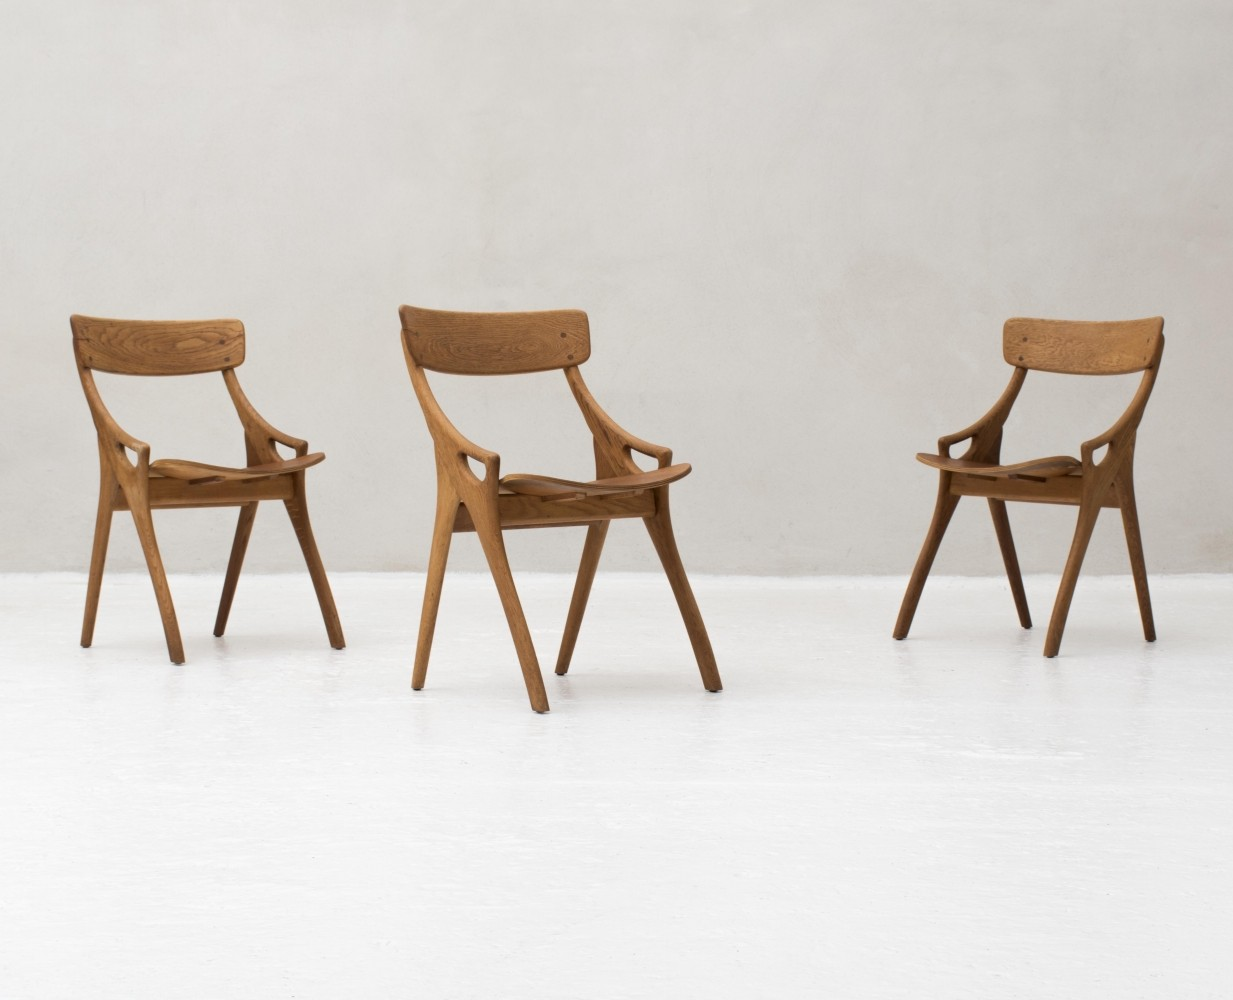 3 chairs by Arne Hovmand Olsen for Mogens Kold